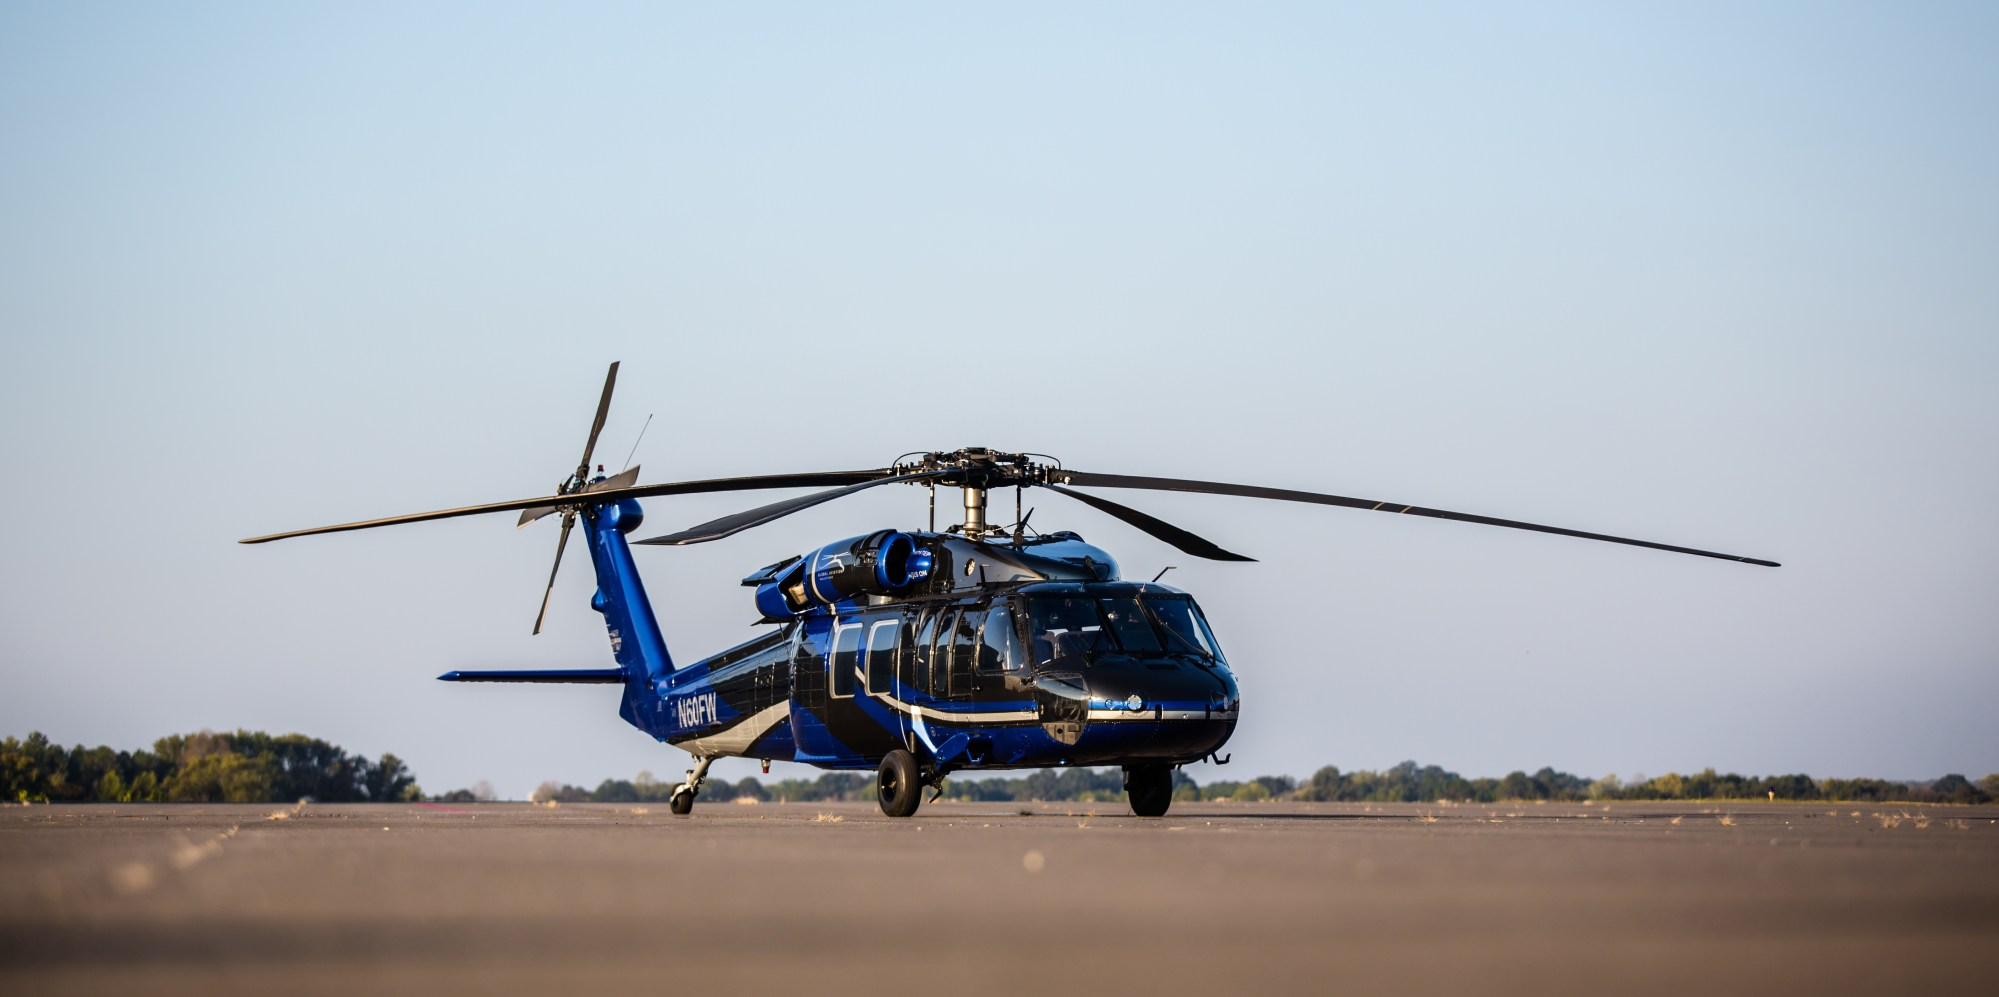 hight resolution of g5000h upgrade program introduced for black hawk helicopters